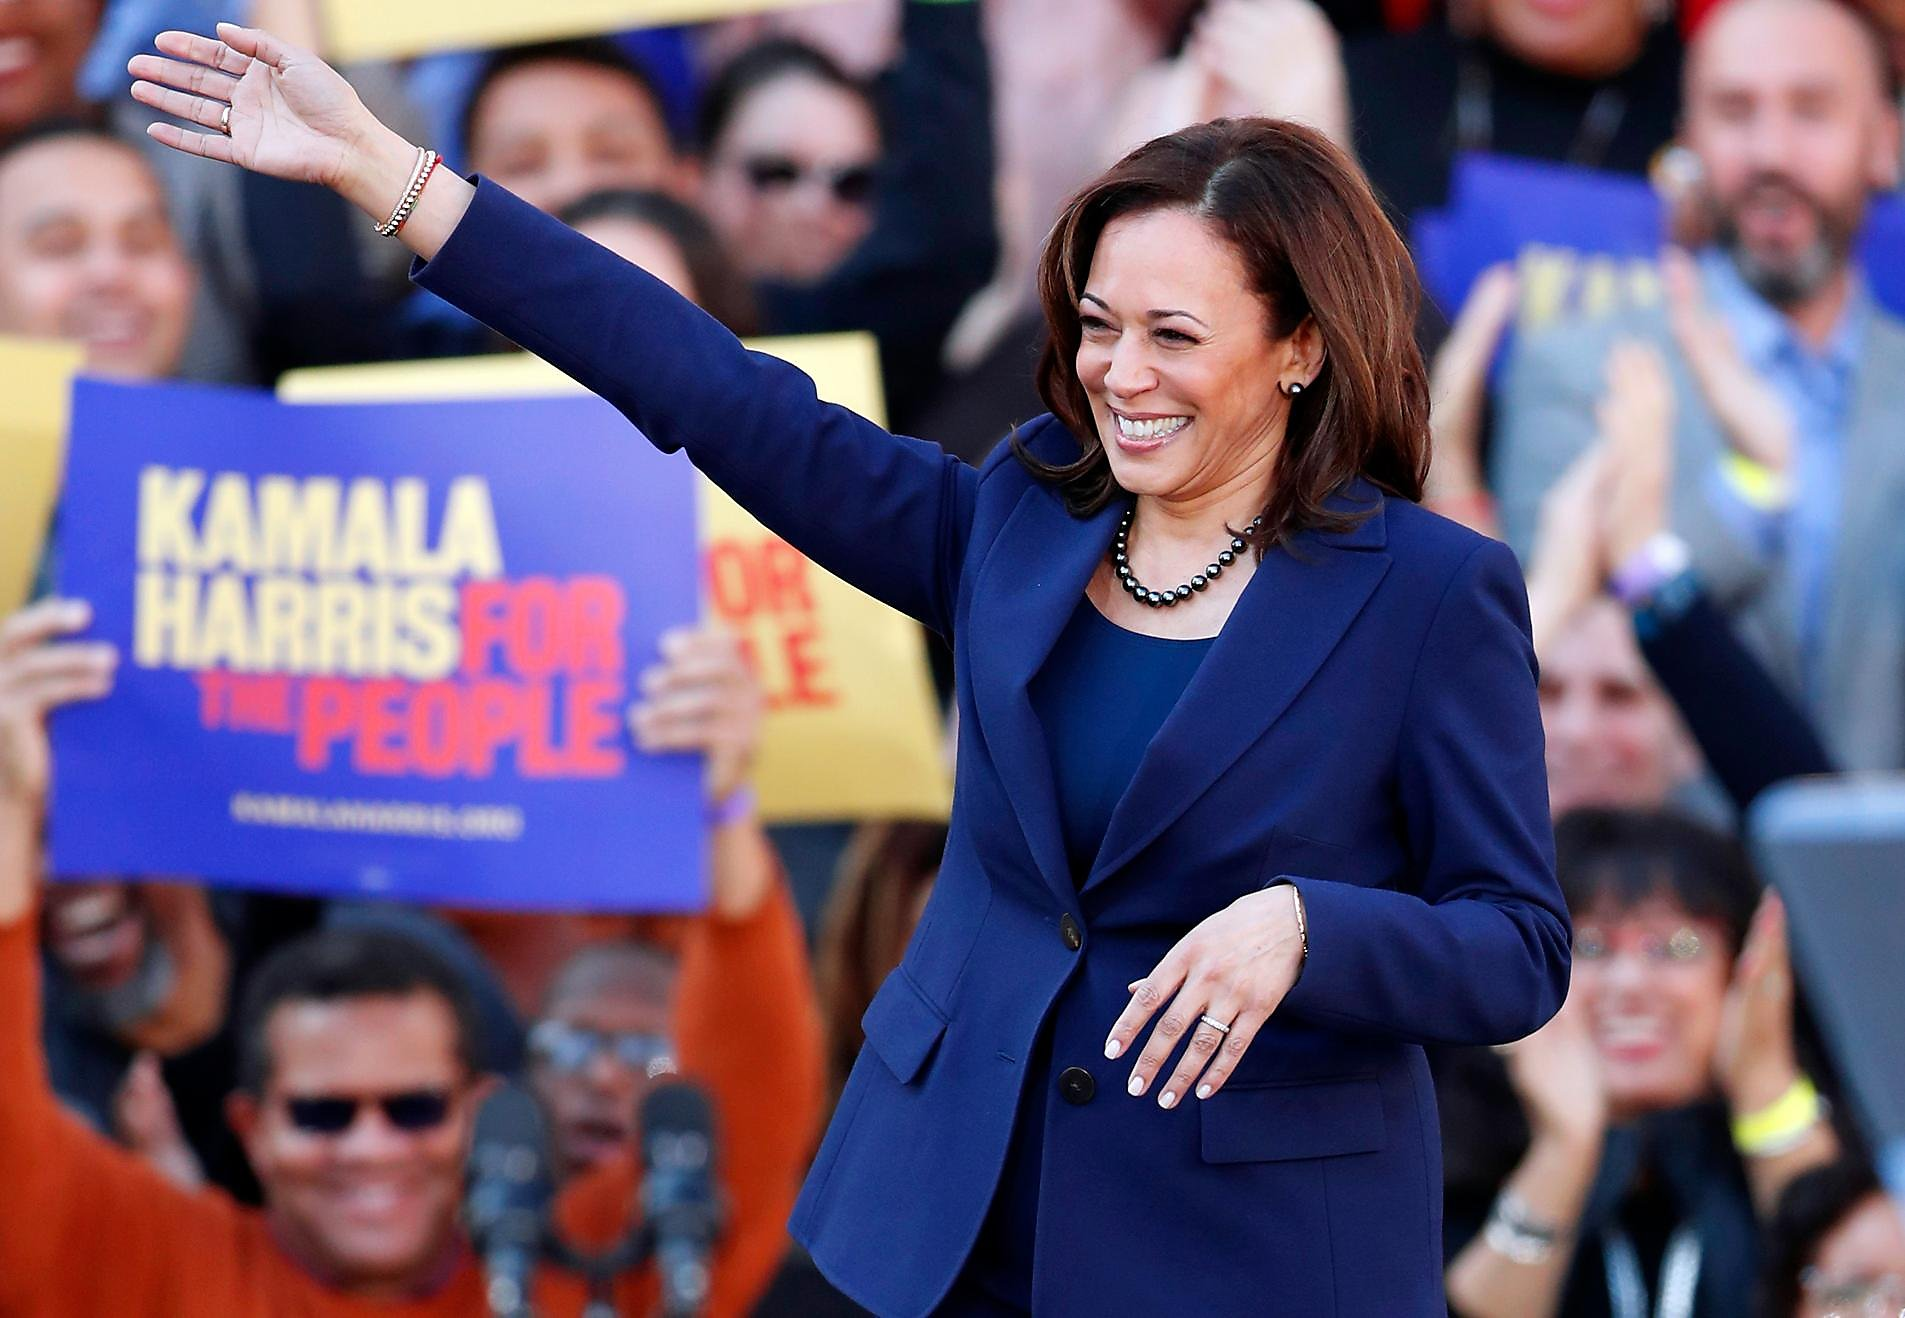 Chronicled: Who is Kamala Harris? New podcast by The Chronicle coming soon